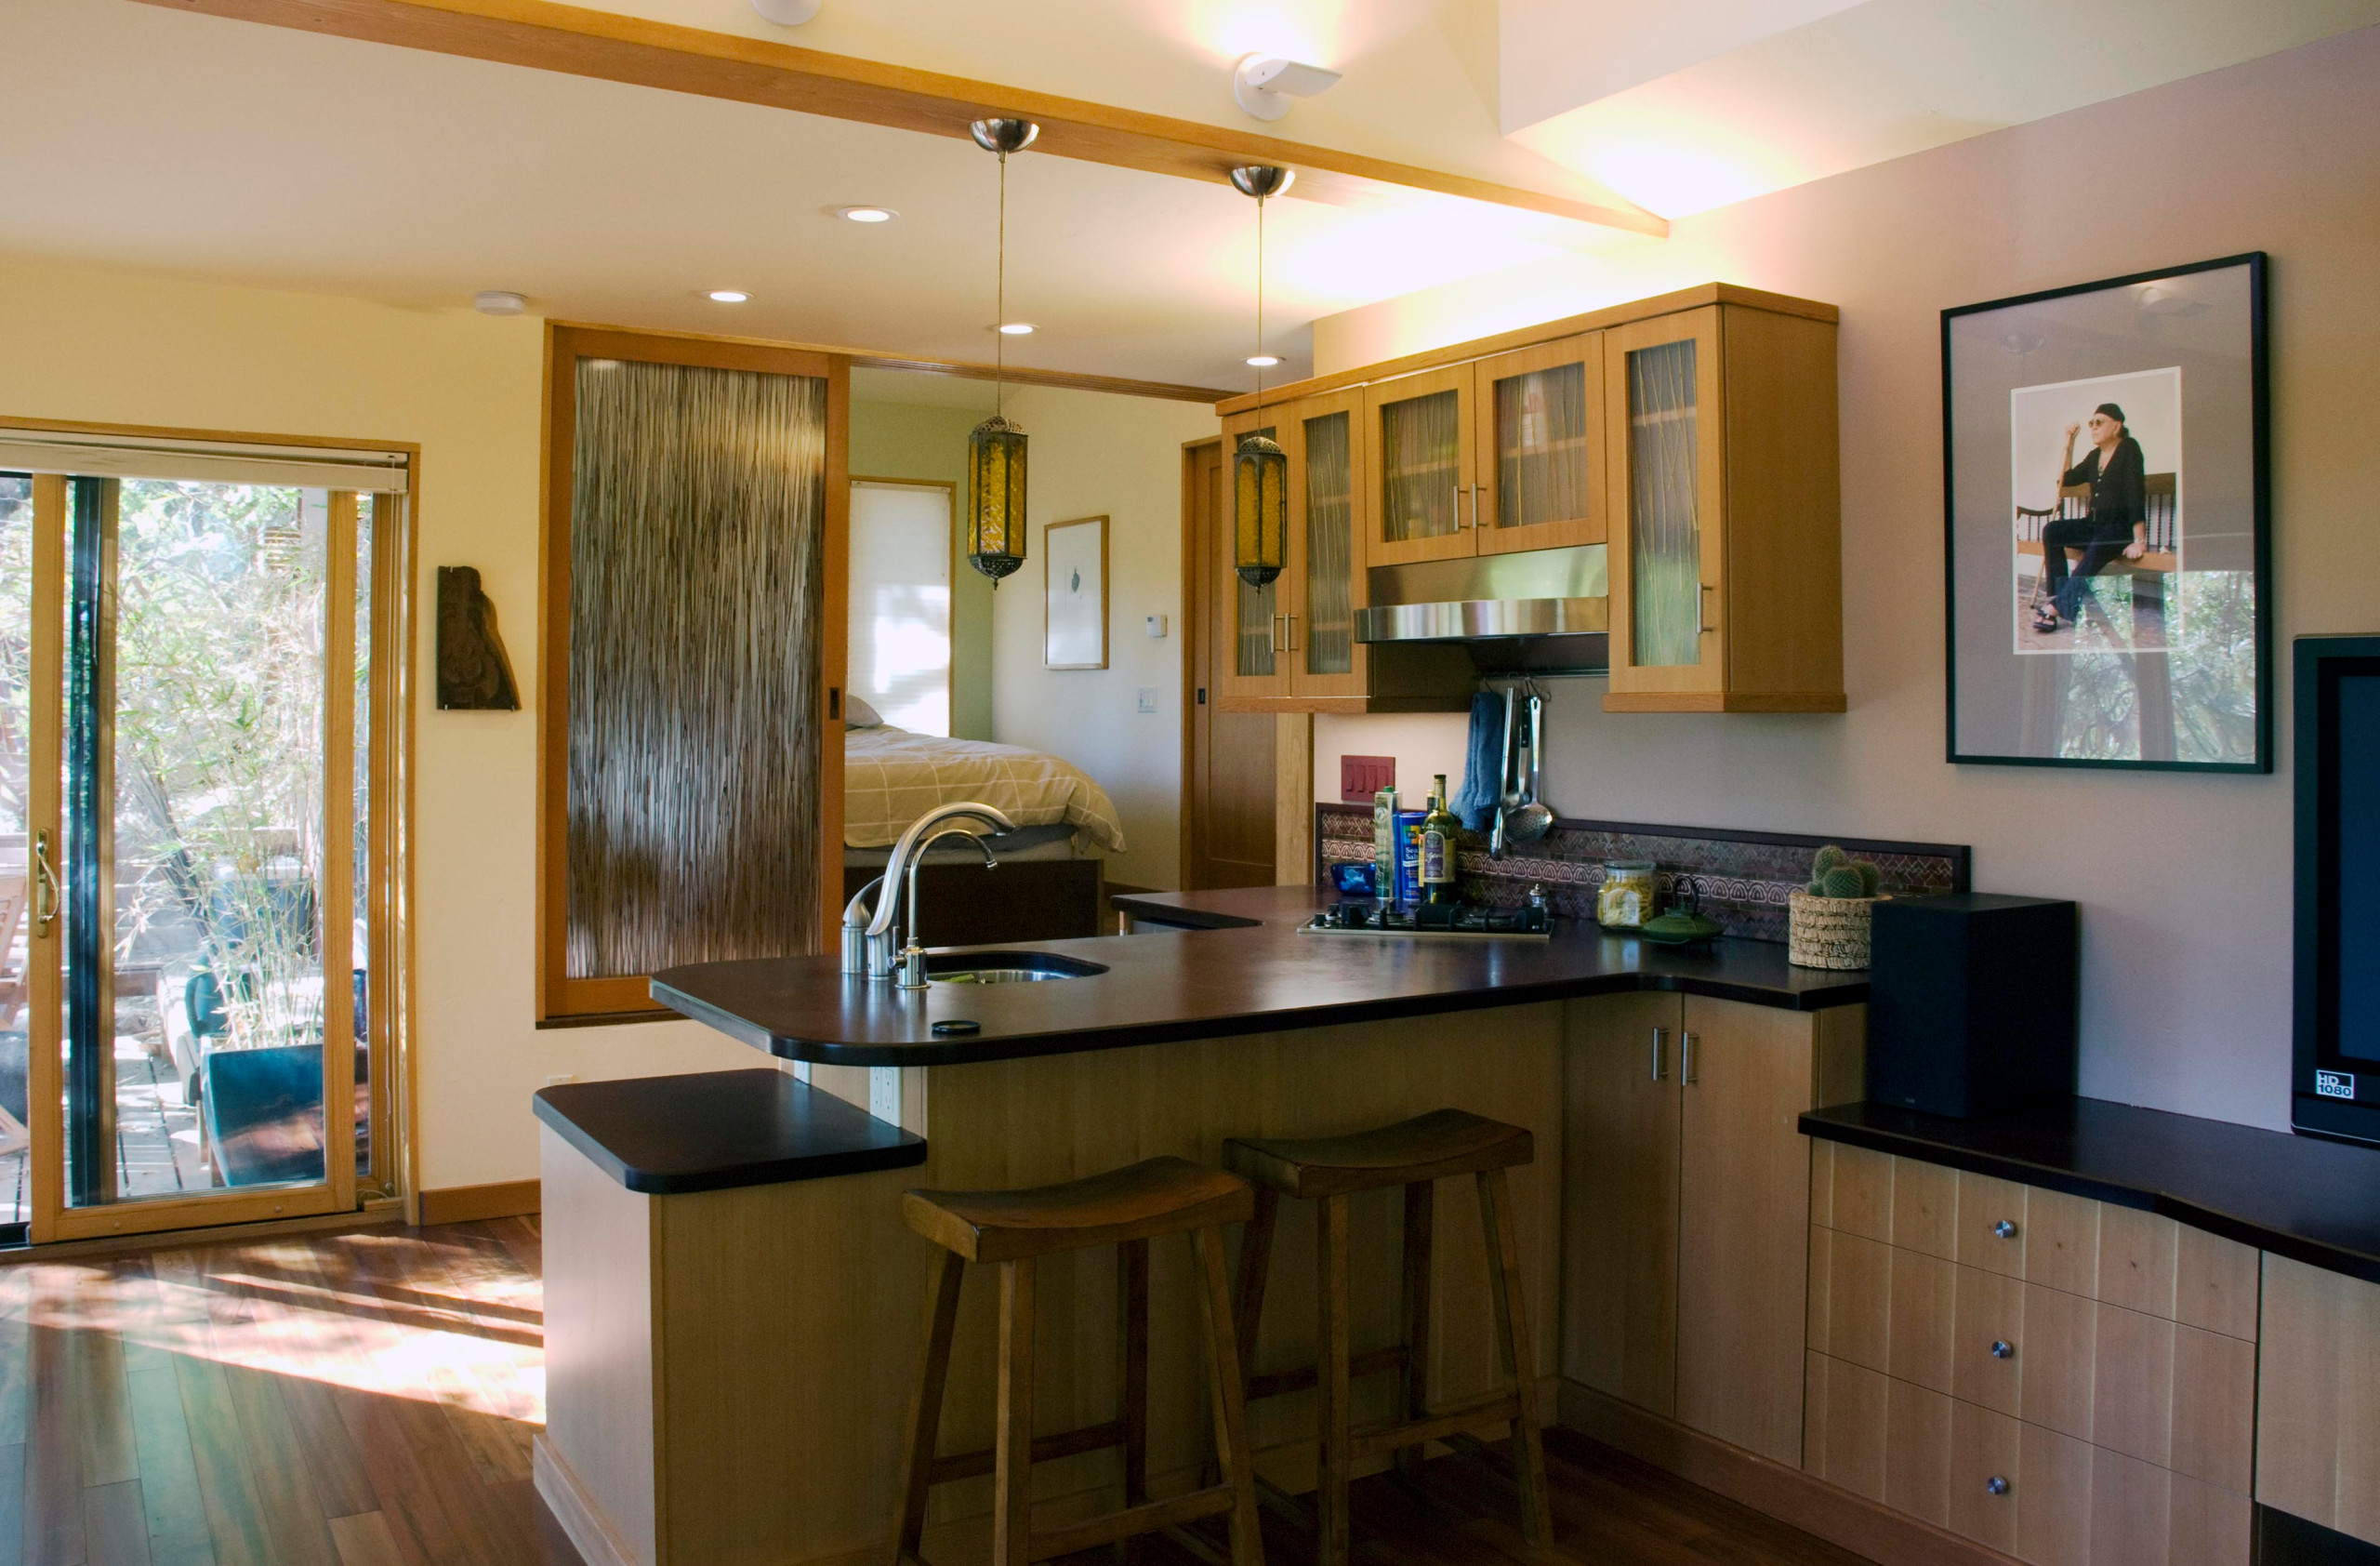 Kitchenette with bedroom beyond